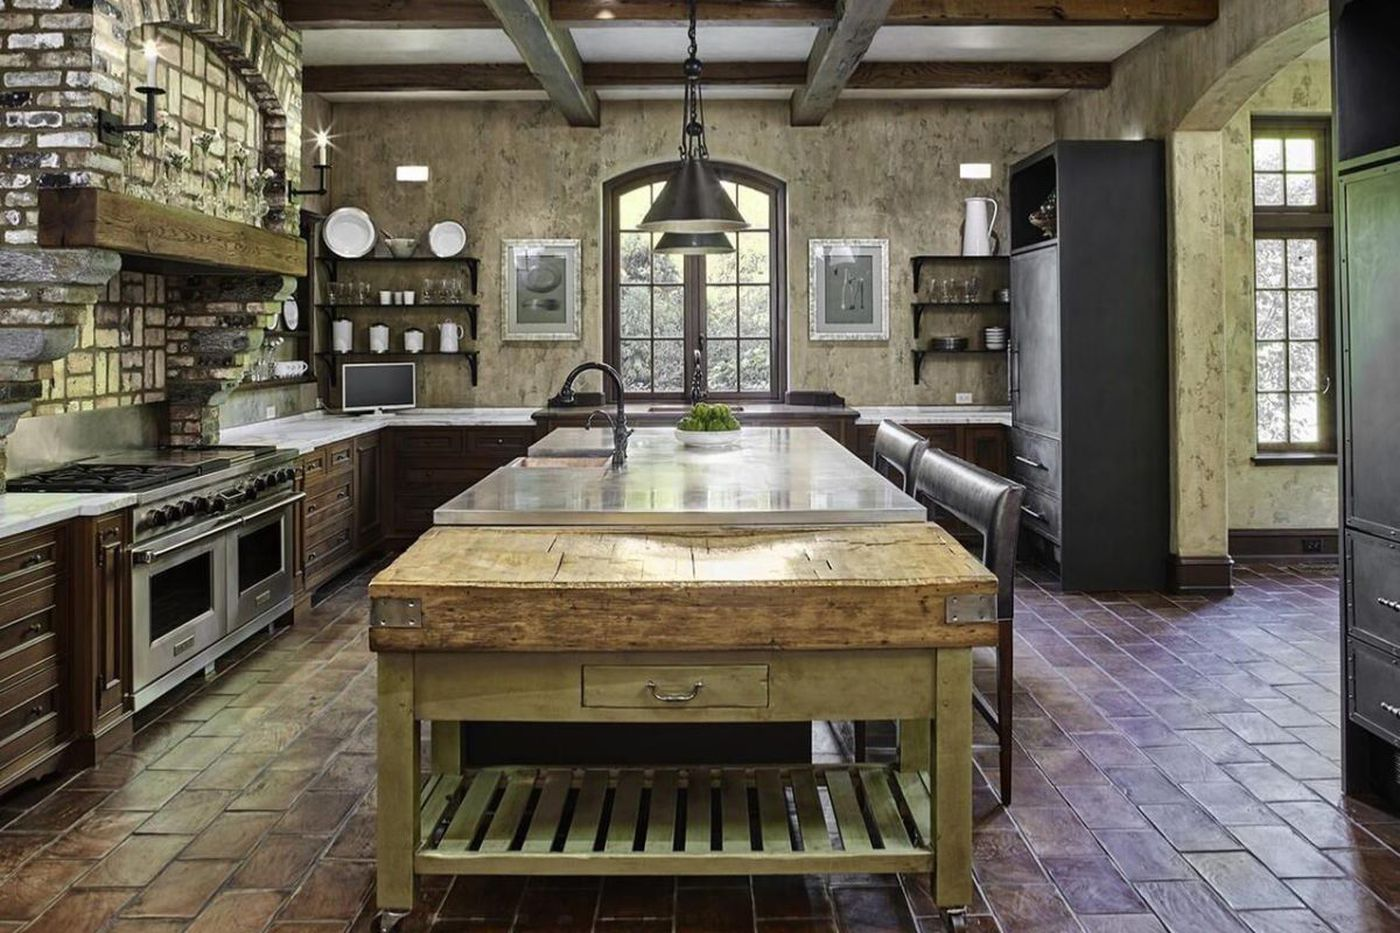 Gourmet kitchens of Montgomery County: A place to channel your inner ...